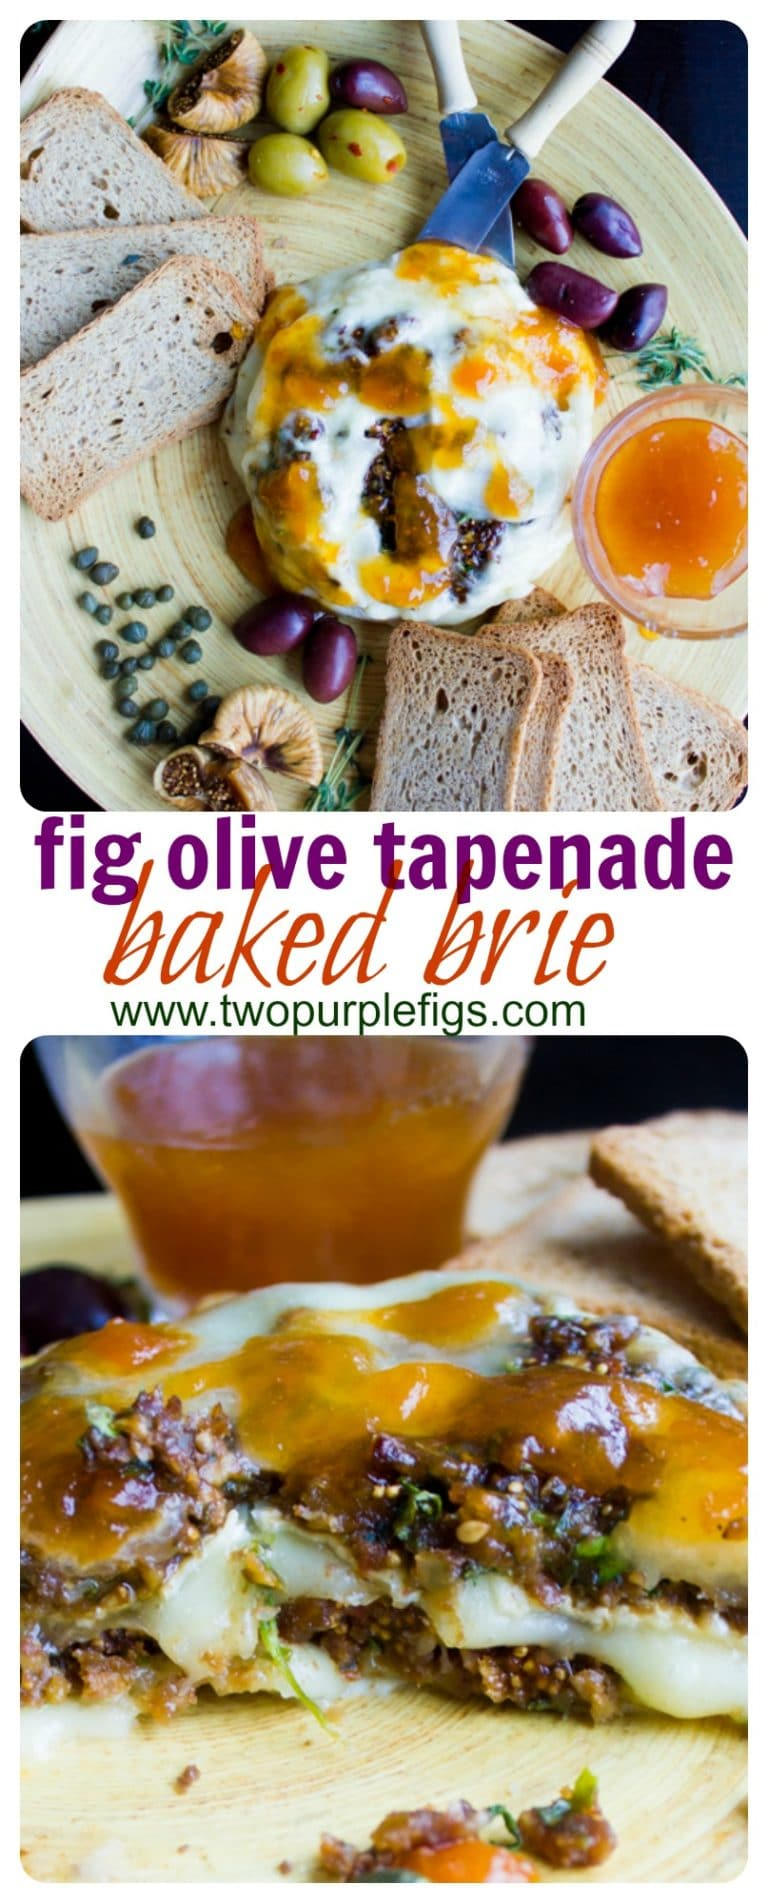 Baked Brie Stuffed with Fig Olive Tapenade